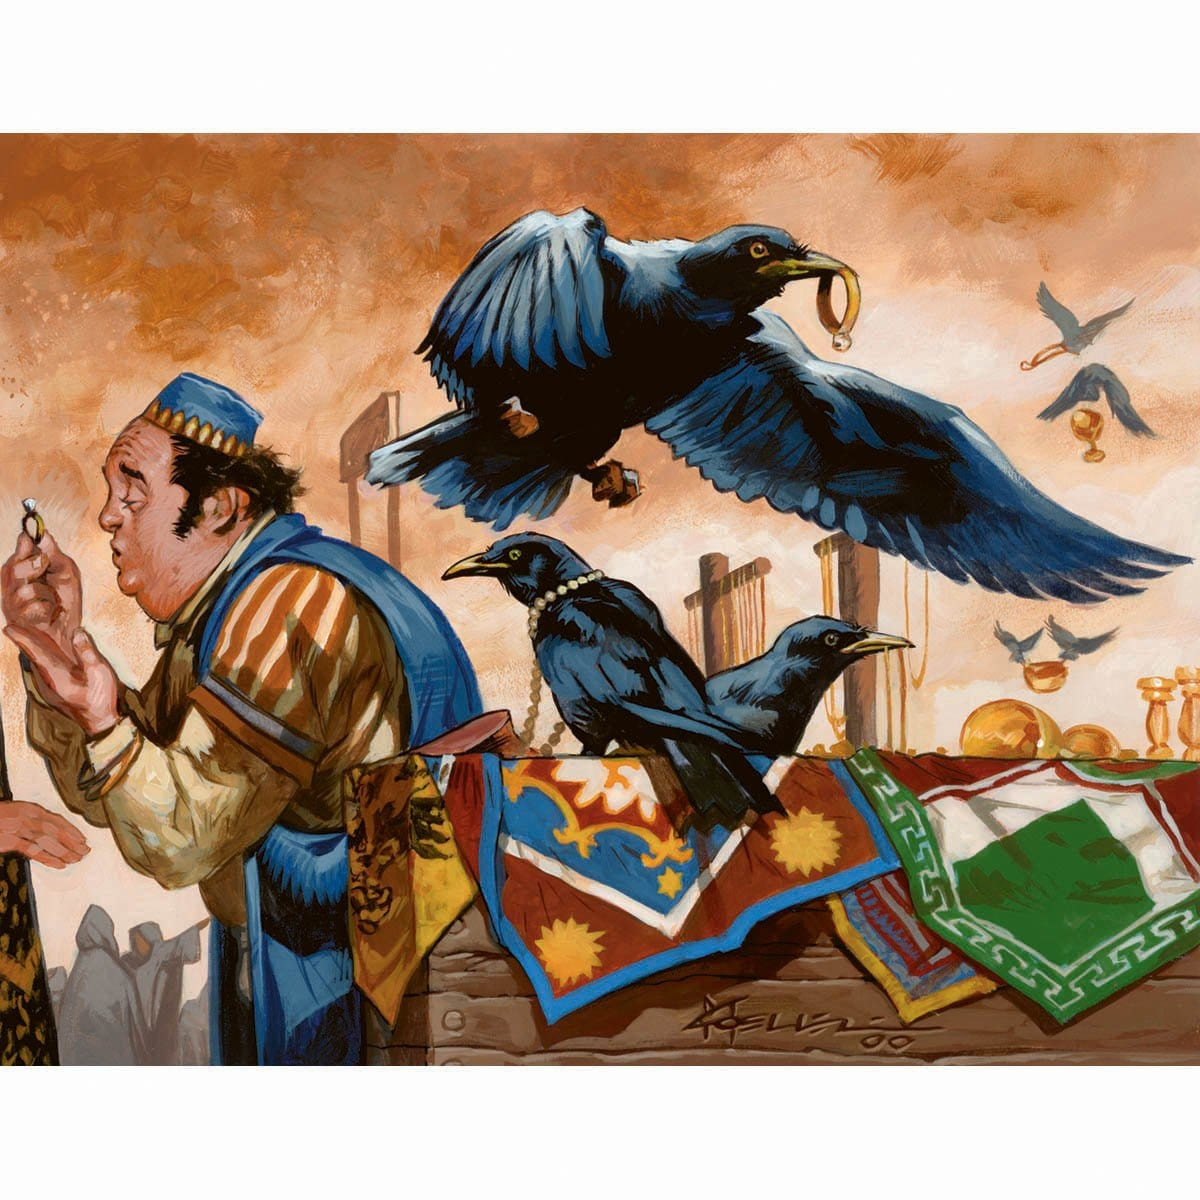 Thieving Magpie Print - Print - Original Magic Art - Accessories for Magic the Gathering and other card games